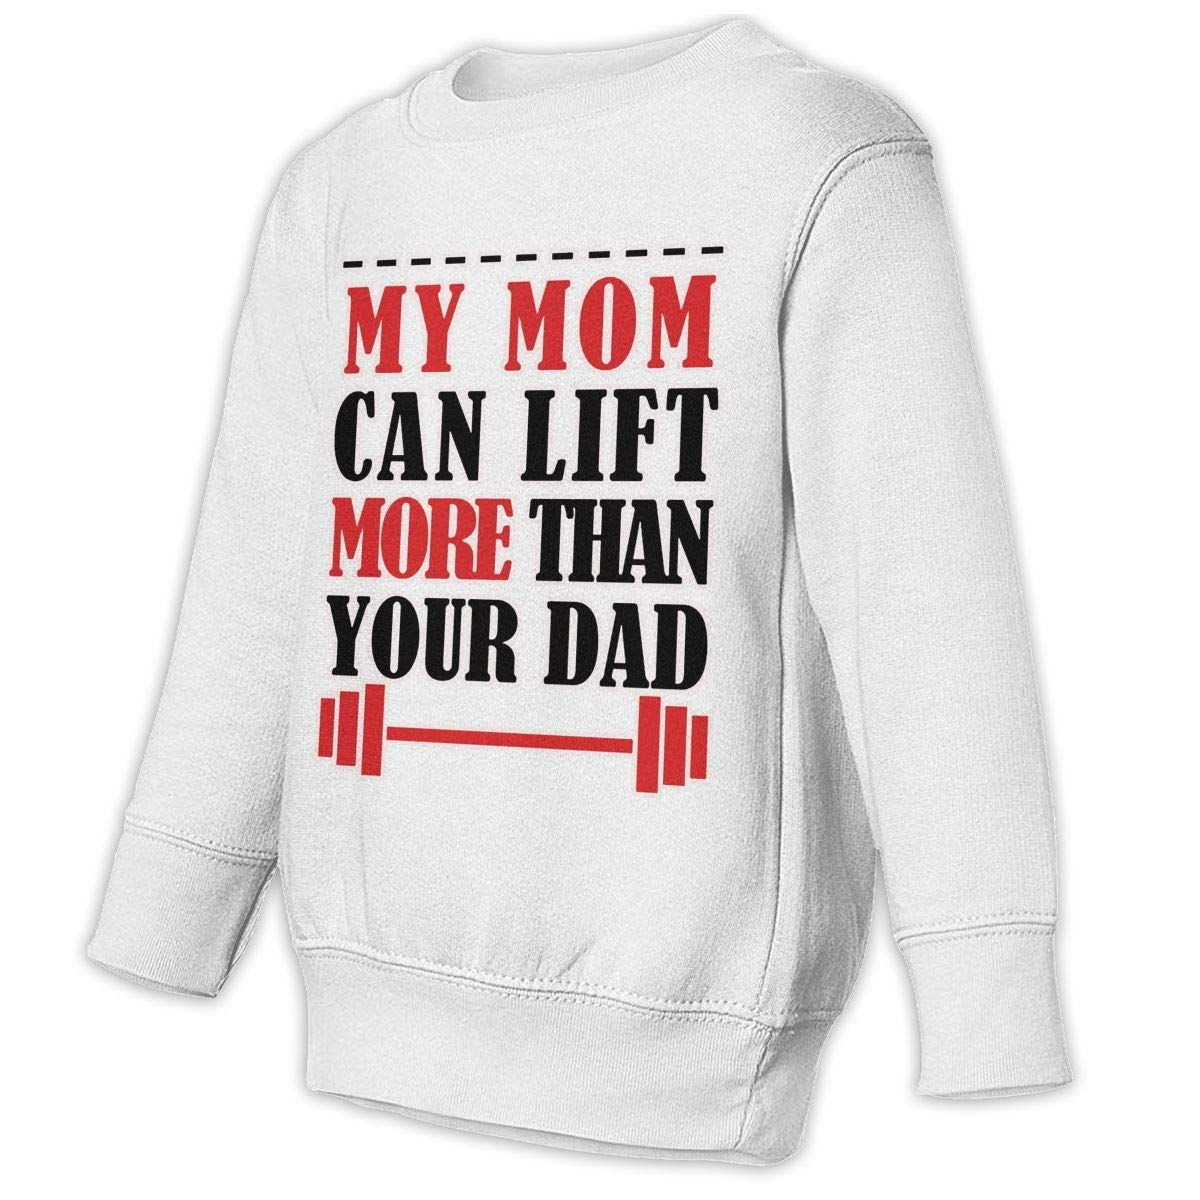 b643cc83 My Mom Can Lift More Than Your Dad Baby Sweatshirt Cute Kids Hoodies  Comfortable Outfits * Make certain to look into this awesome item.